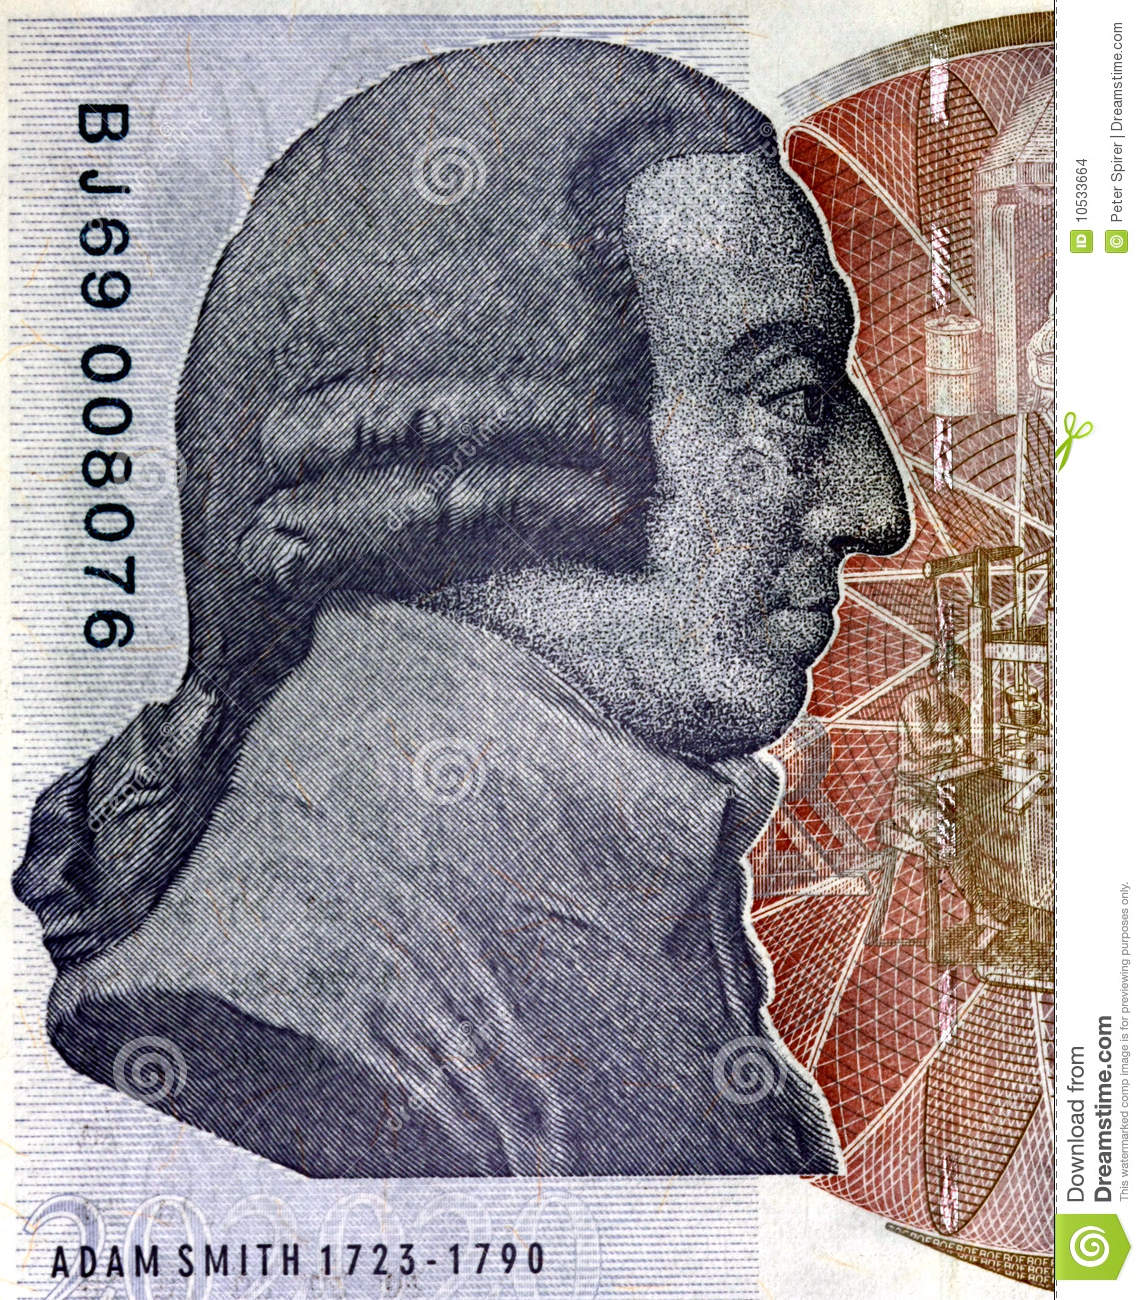 A biography of adam smith founder of modern economics